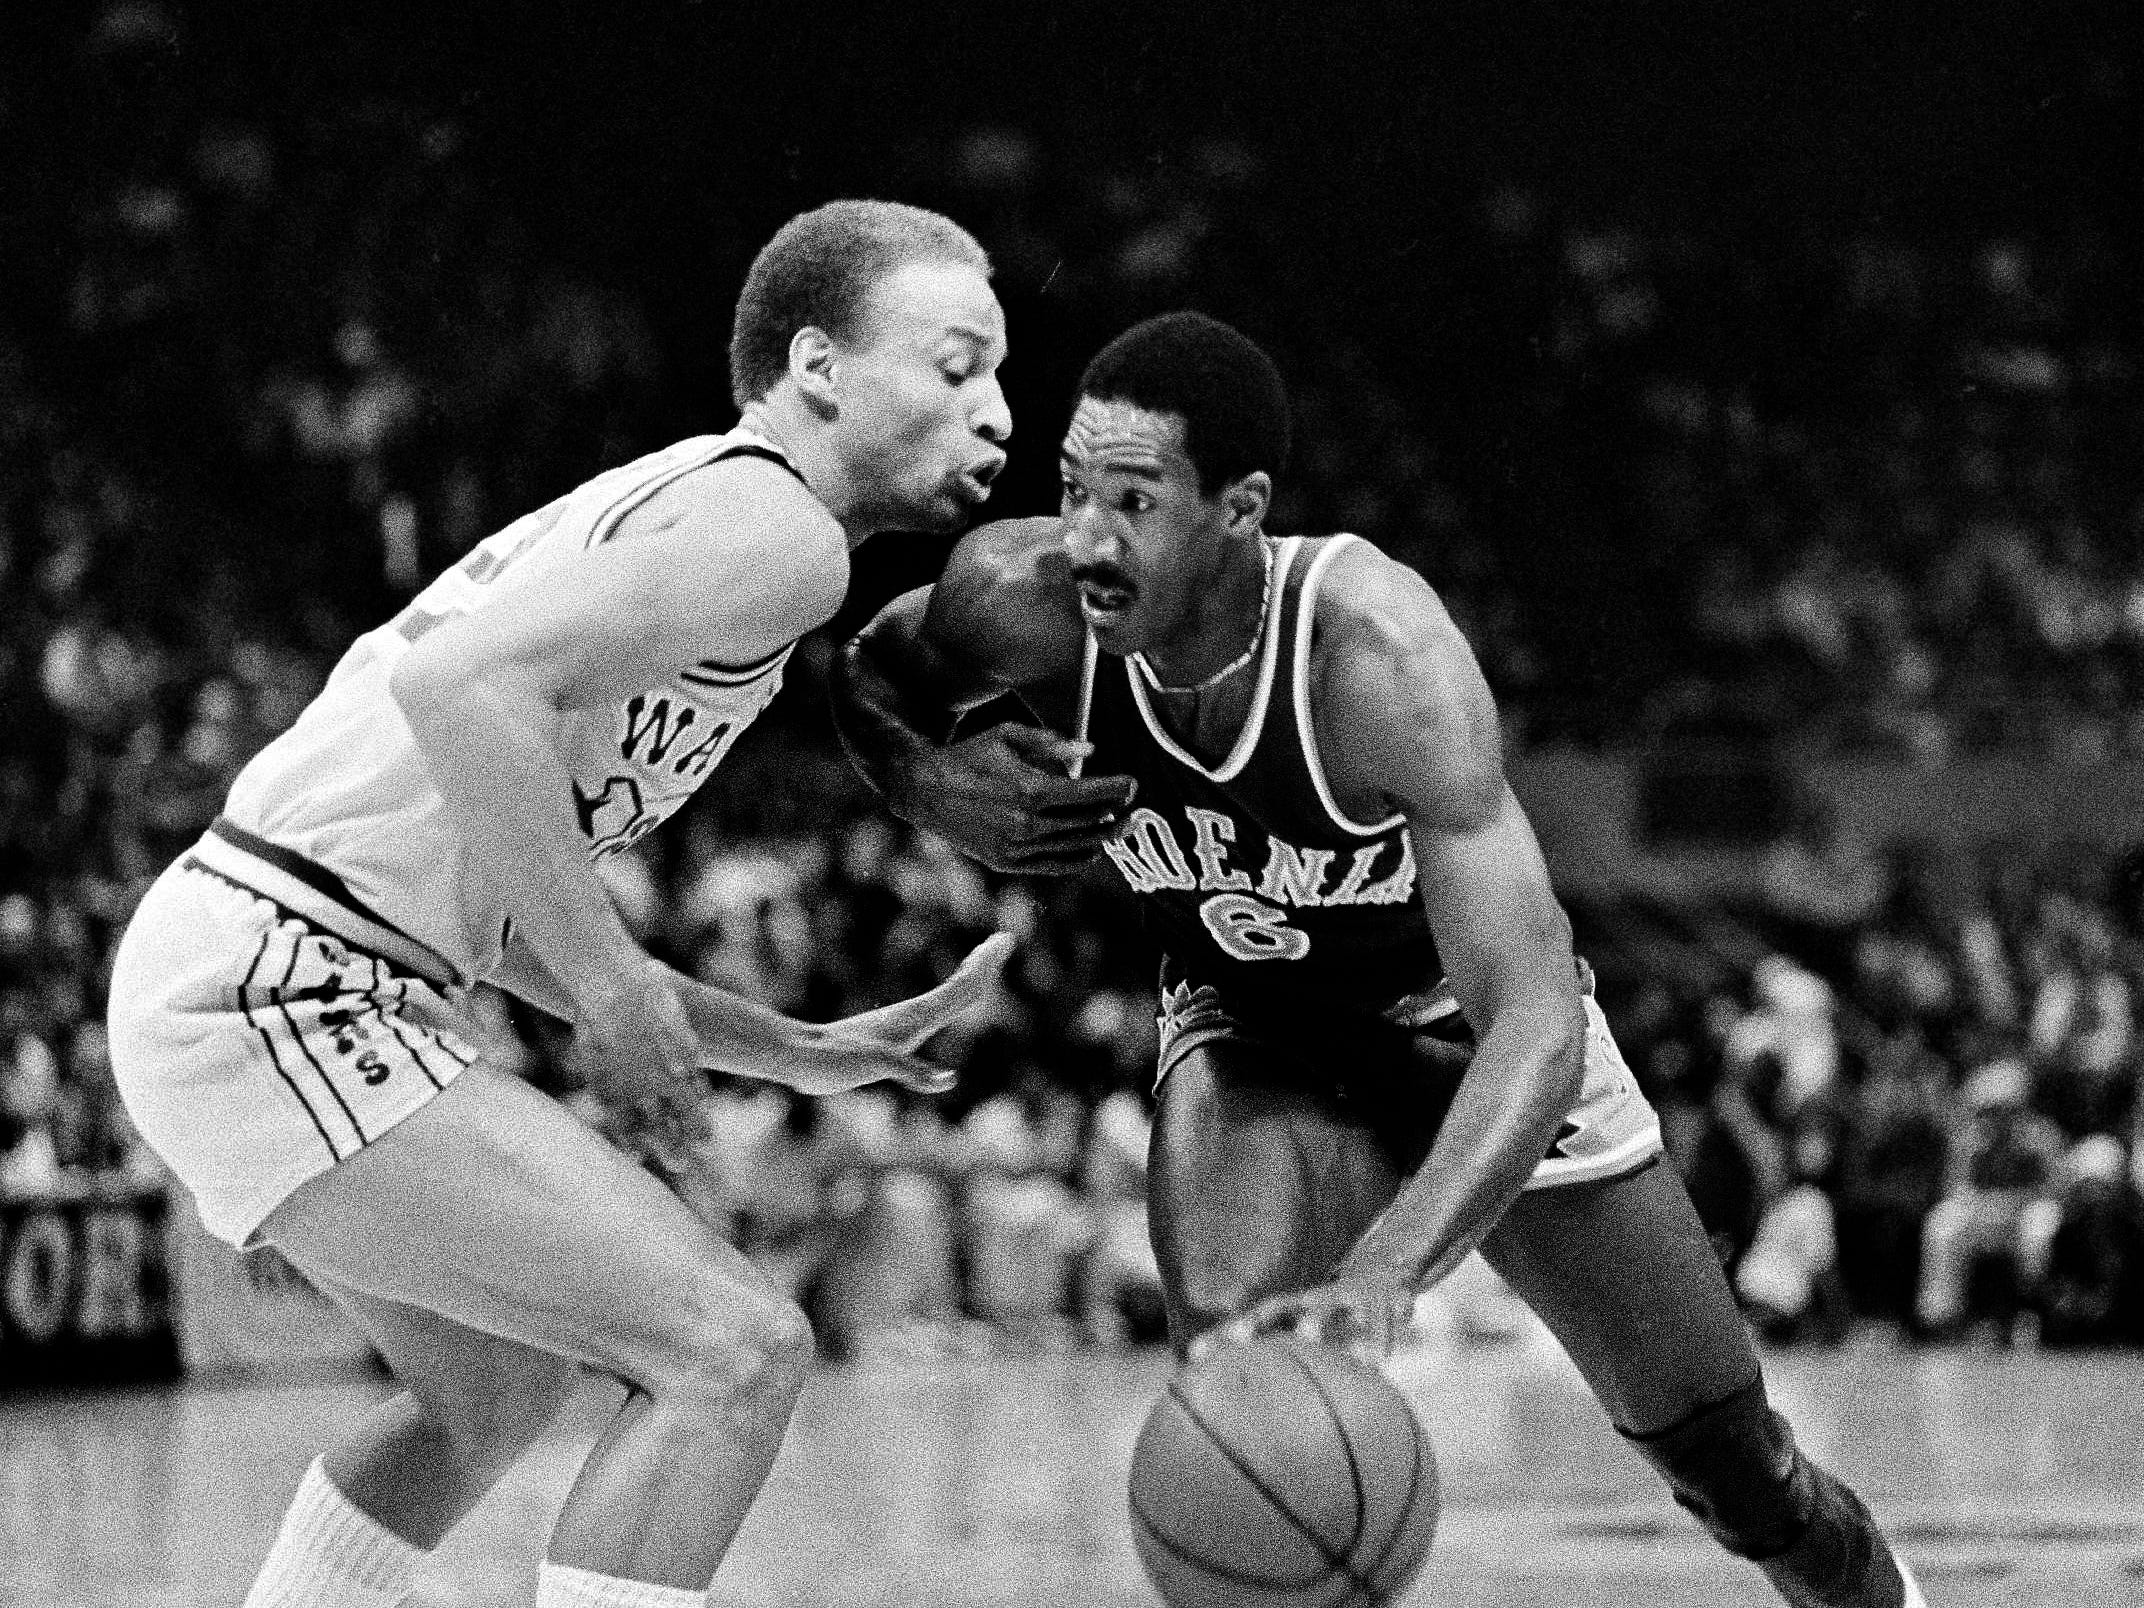 1979-80 | Suns MVP: Walter Davis. Davis averaged 21.5 points per game on 56 percent shooting and was picked for his third All Star game in his first three seasons.